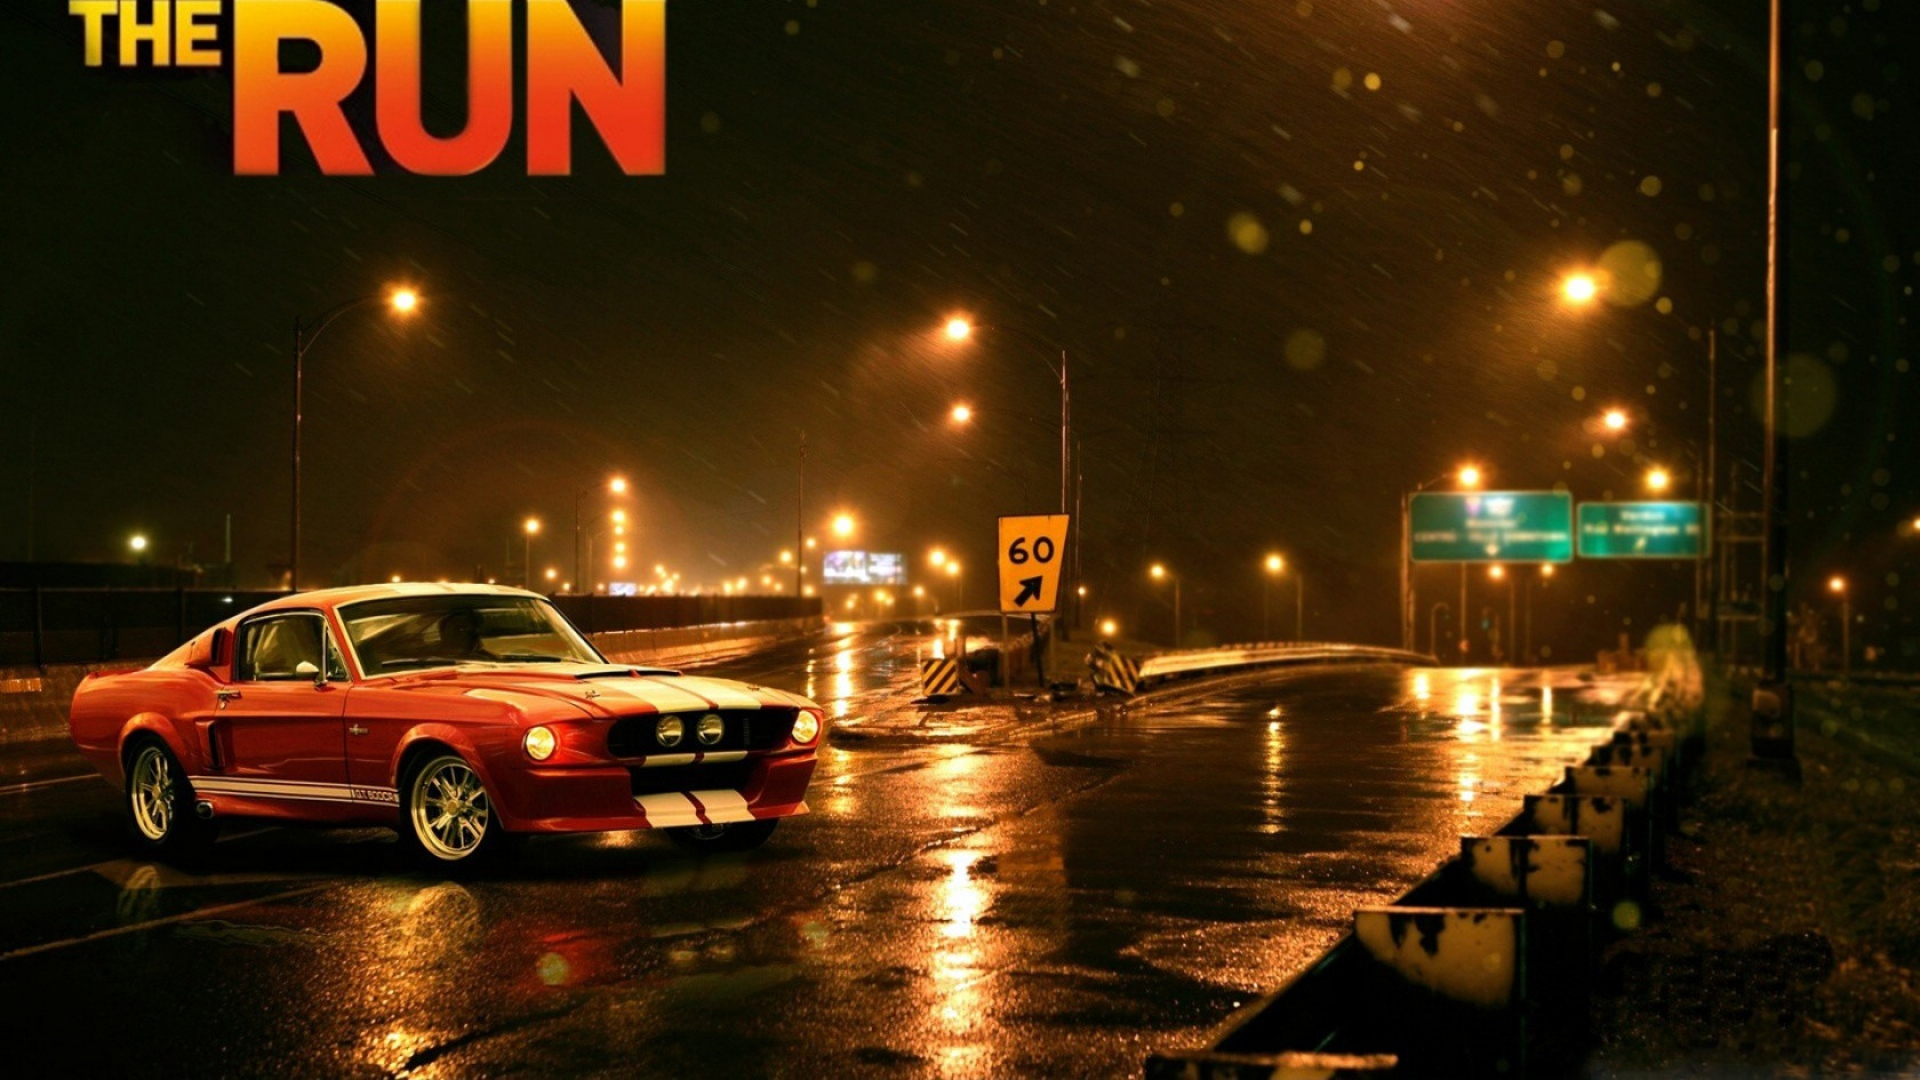 Nfs Most Wanted 2012 Cars Wallpapers Download Wallpaper 1920x1080 Nfs Need For Speed The Run